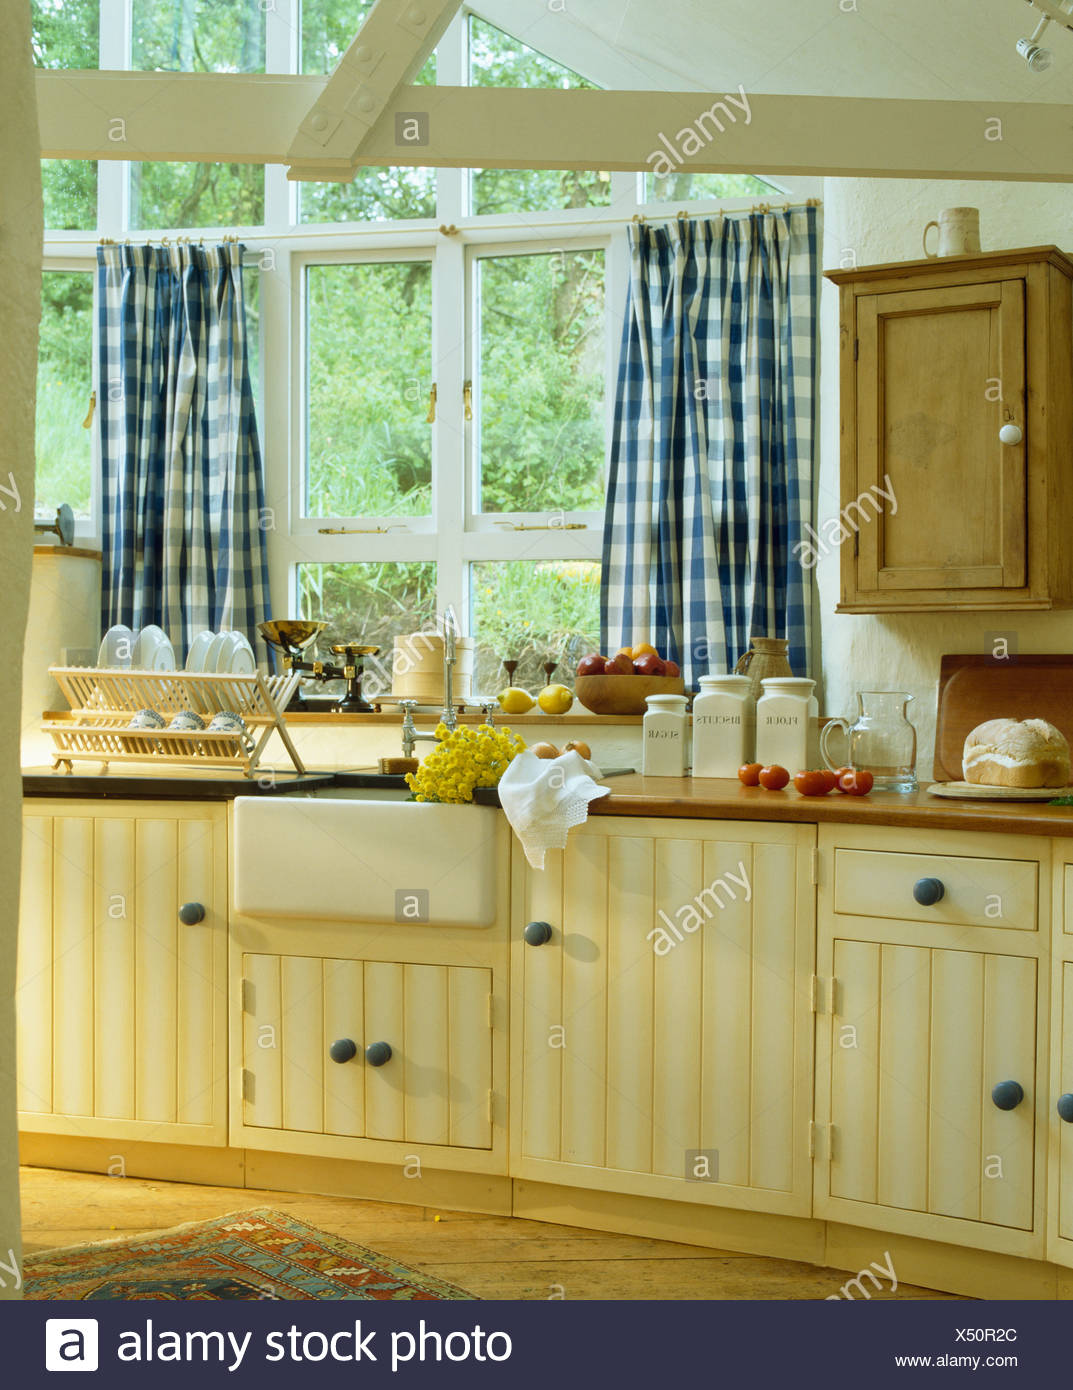 https www alamy com bluewhite checked curtains on window above sink in cottage kitchen extension with pale yellow fitted units image278457268 html